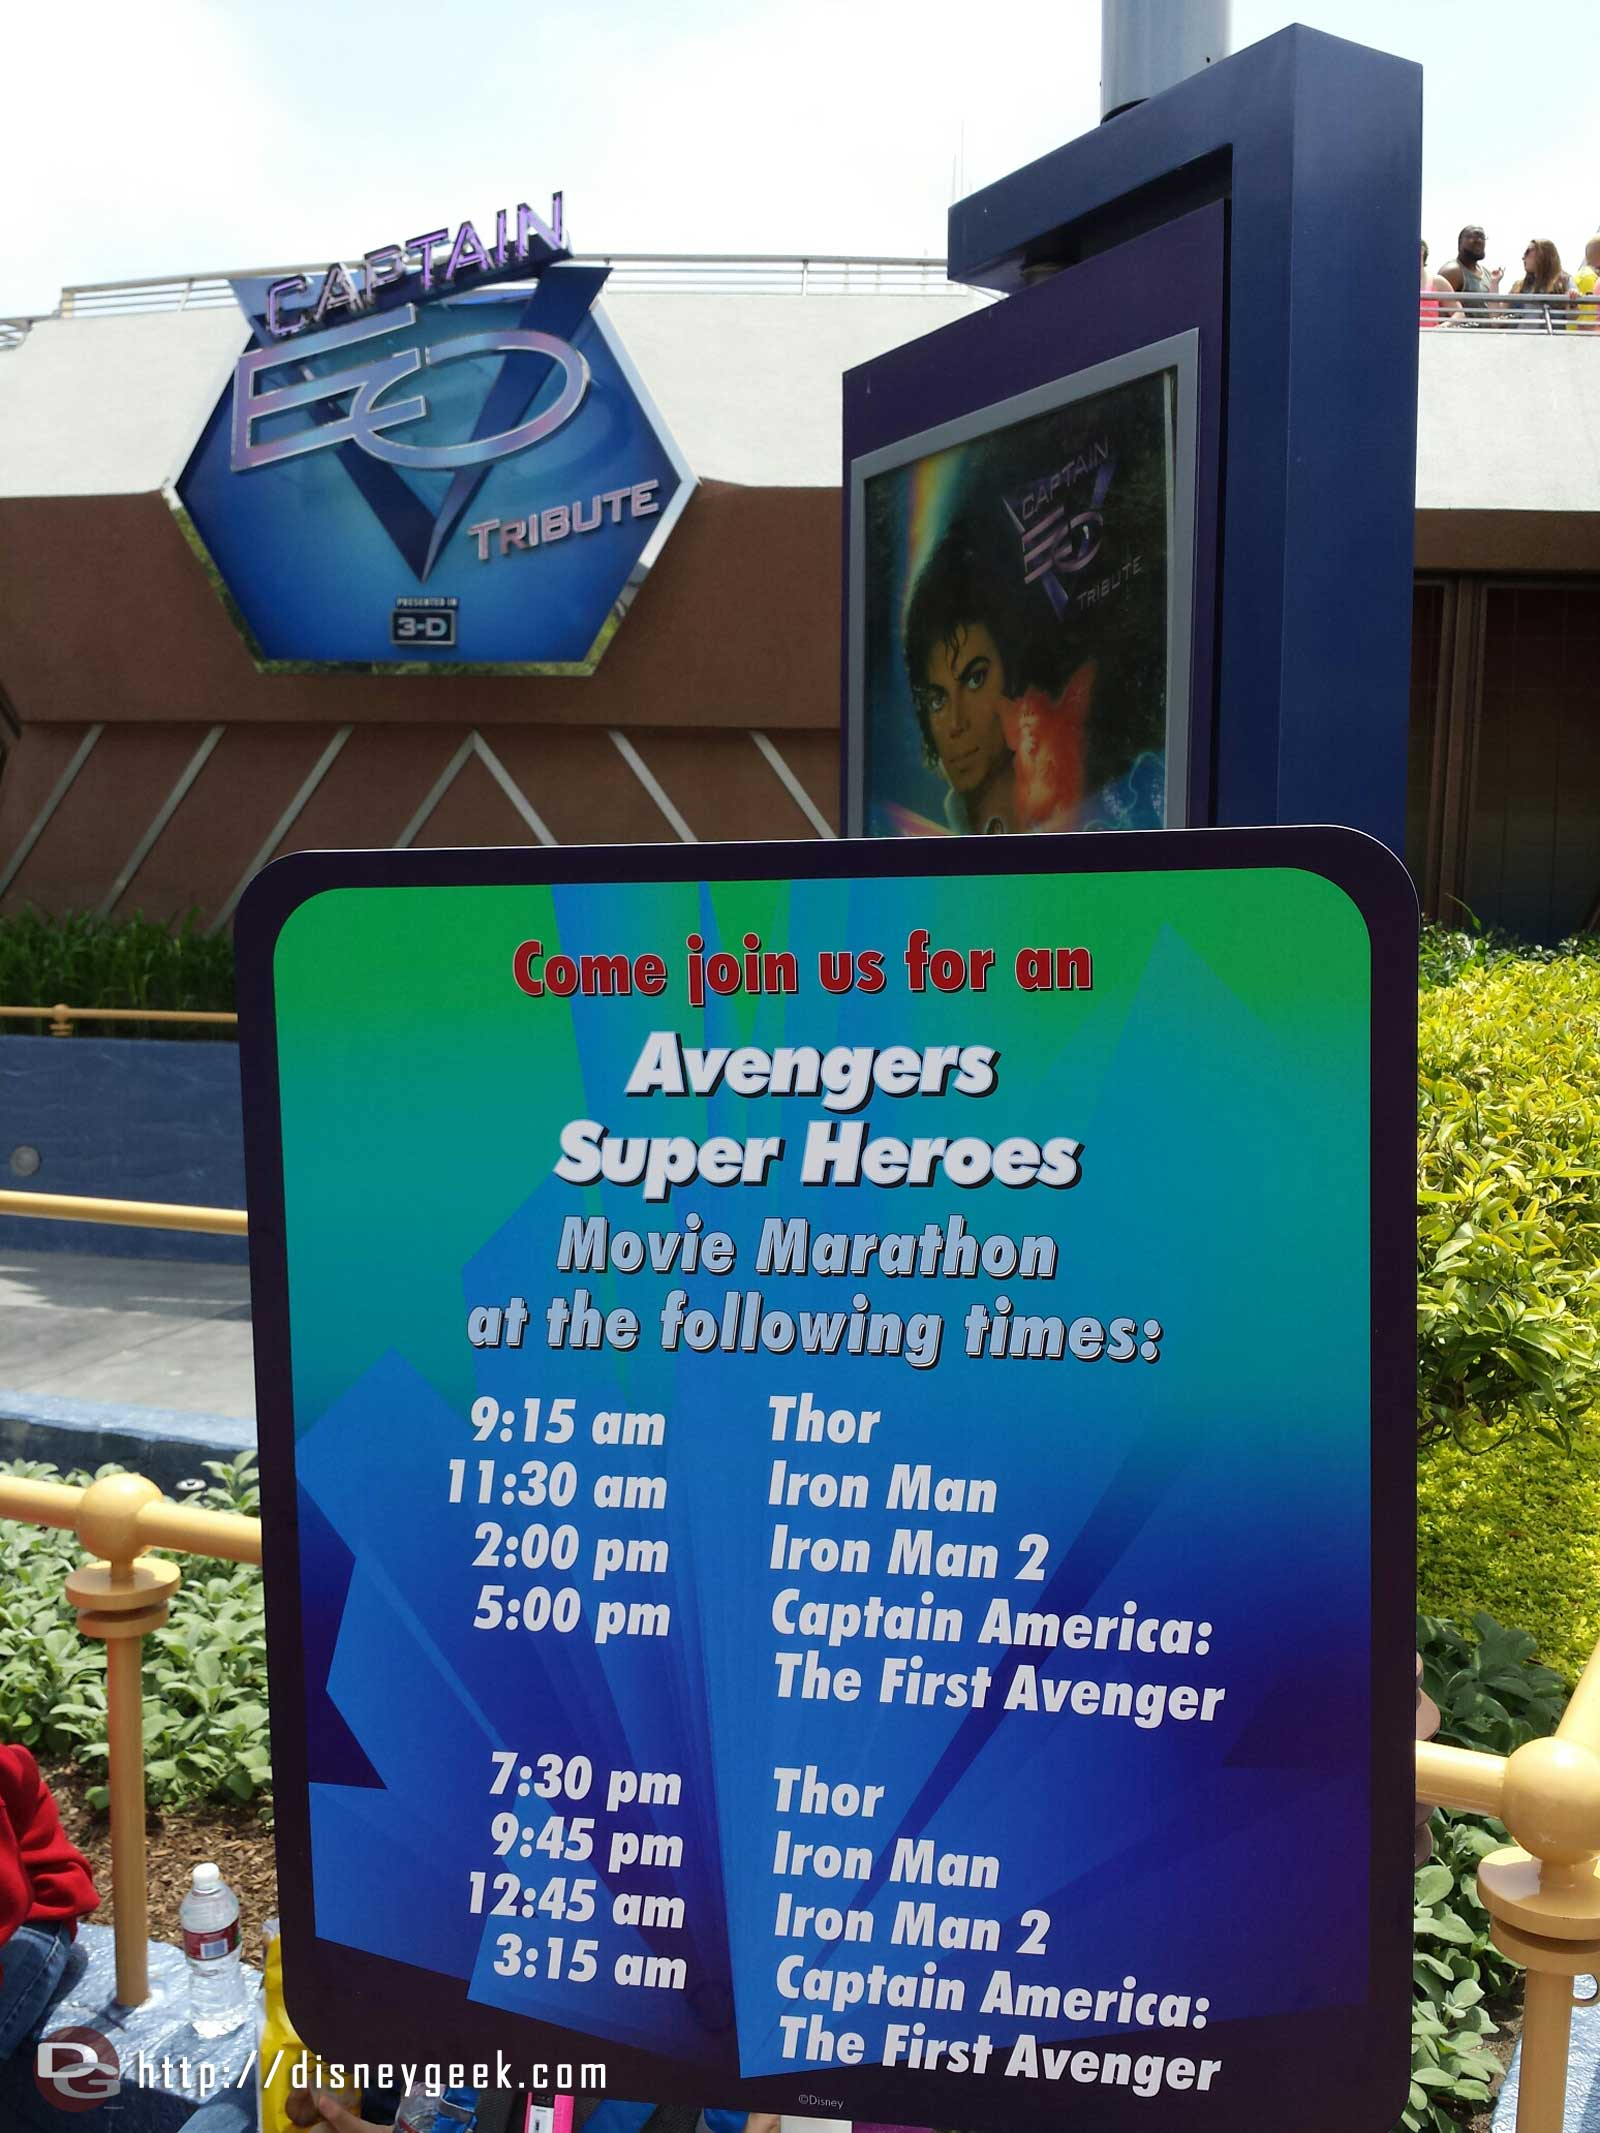 Avengers Super Heros movie marathon in place of Captain EO today #Disney24  #DisneySide